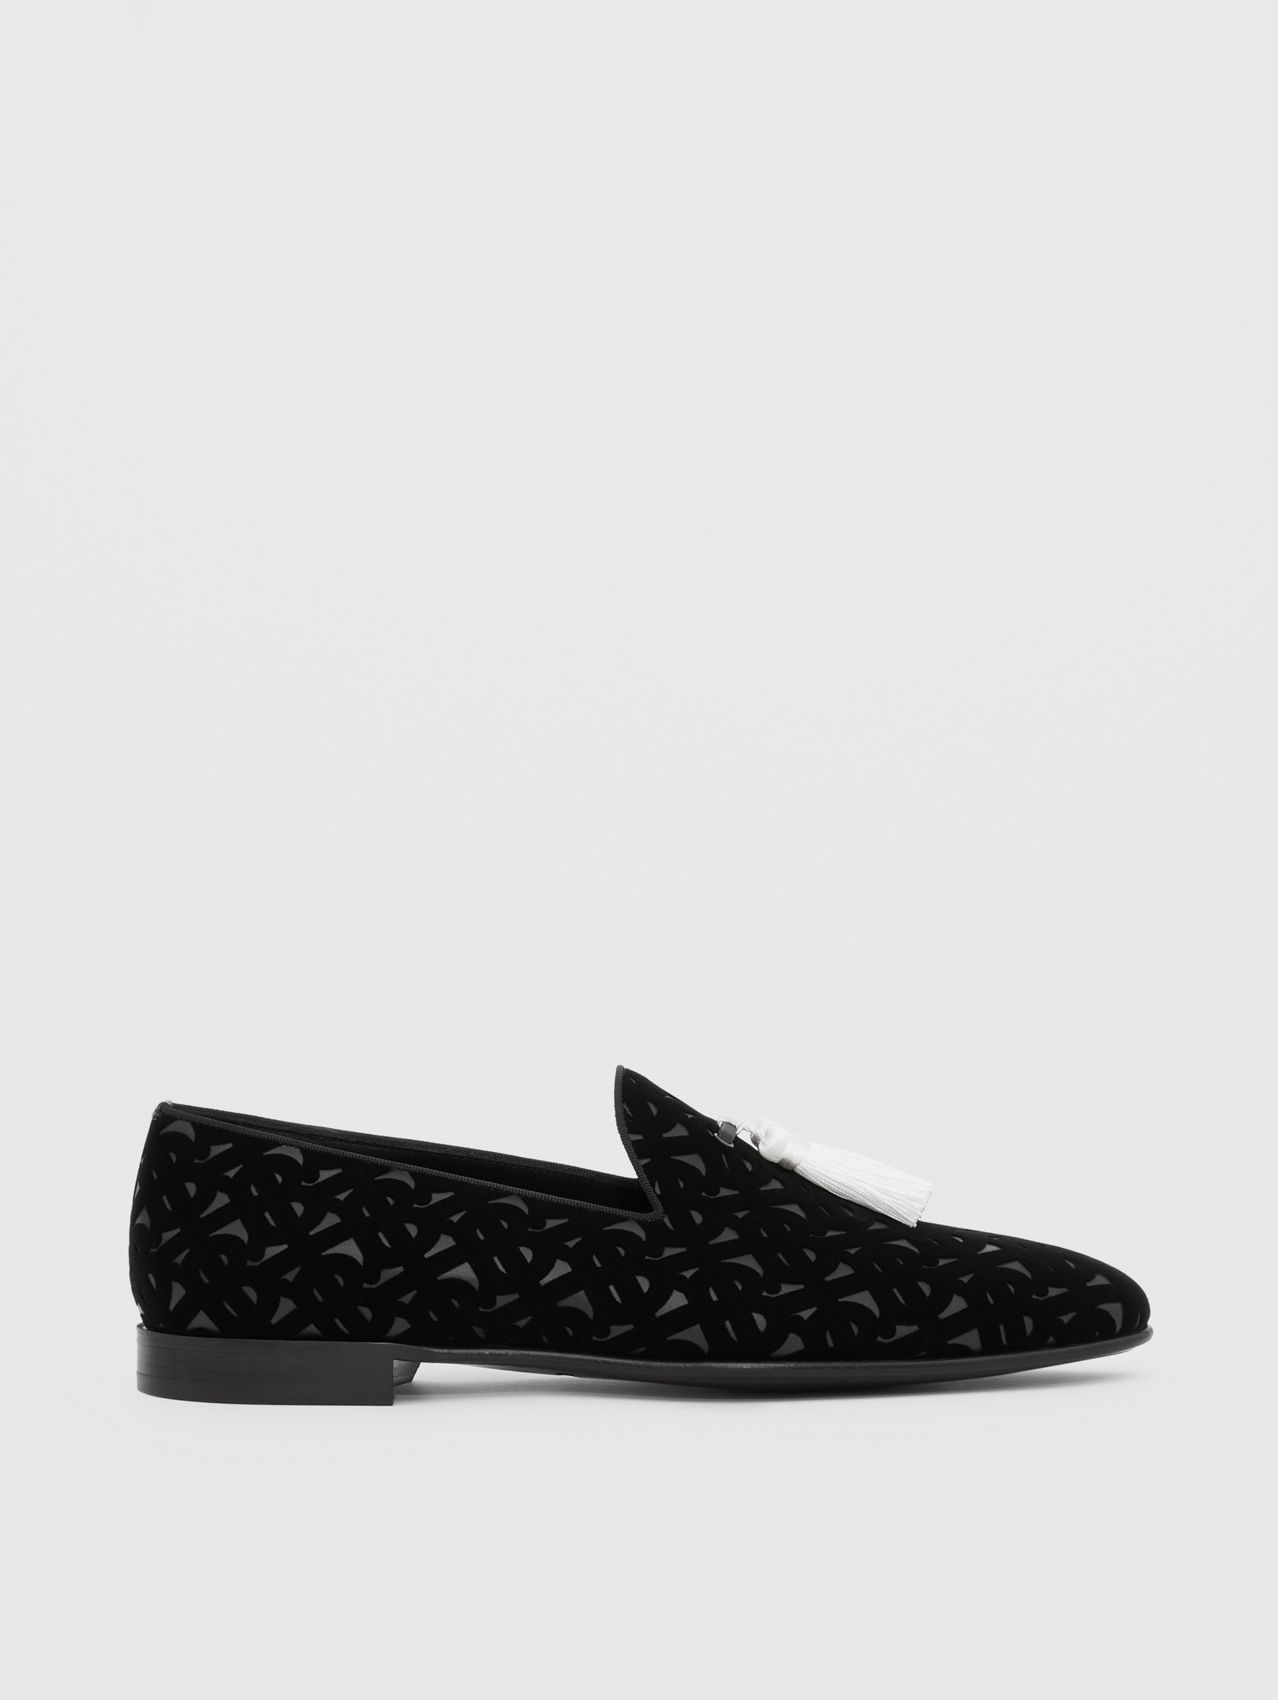 Contrast Tassel Monogram Flocked Leather Loafers in Black